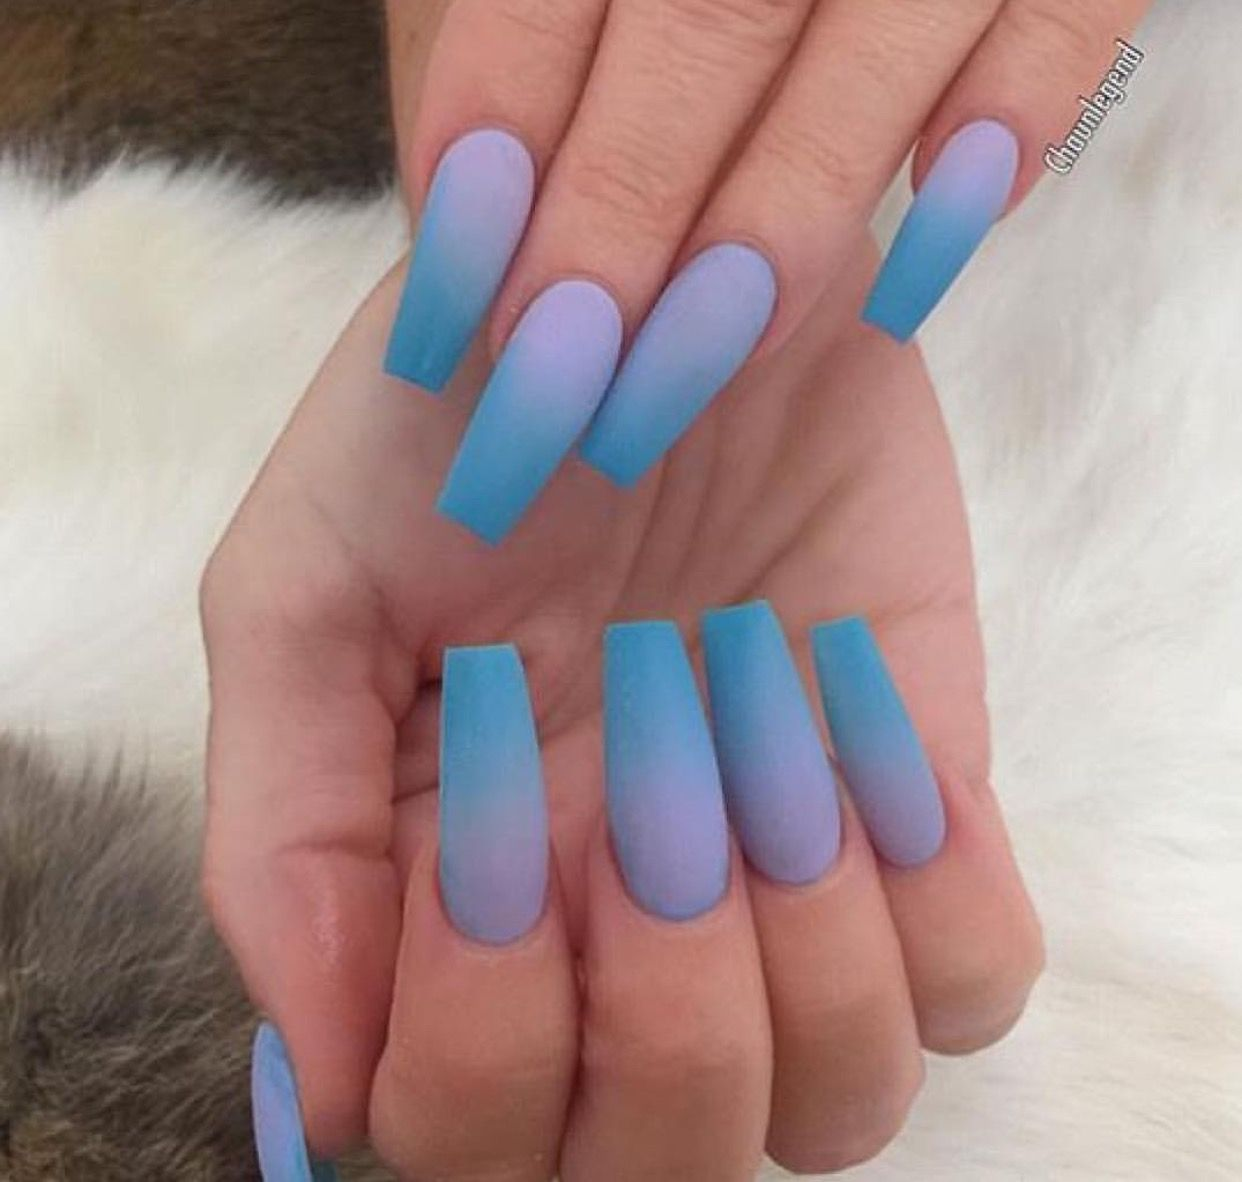 ғollow Me Iѕѕaqyeen With Images Summer Acrylic Nails Acrylic Nails Long Acrylic Nails